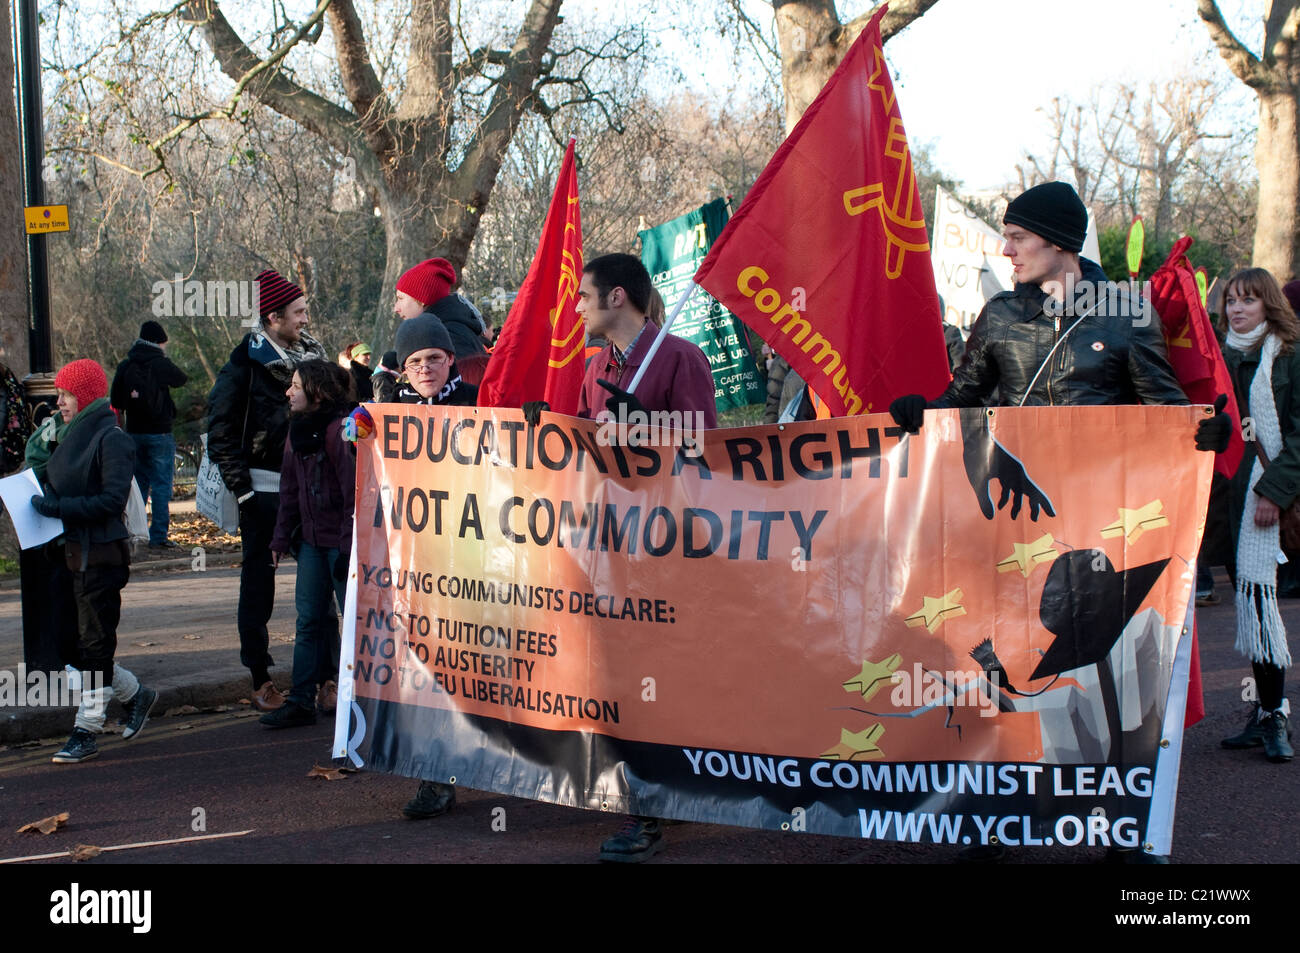 Young Communist League at Student protest against University fees, London, 09/12/2010 - Stock Image